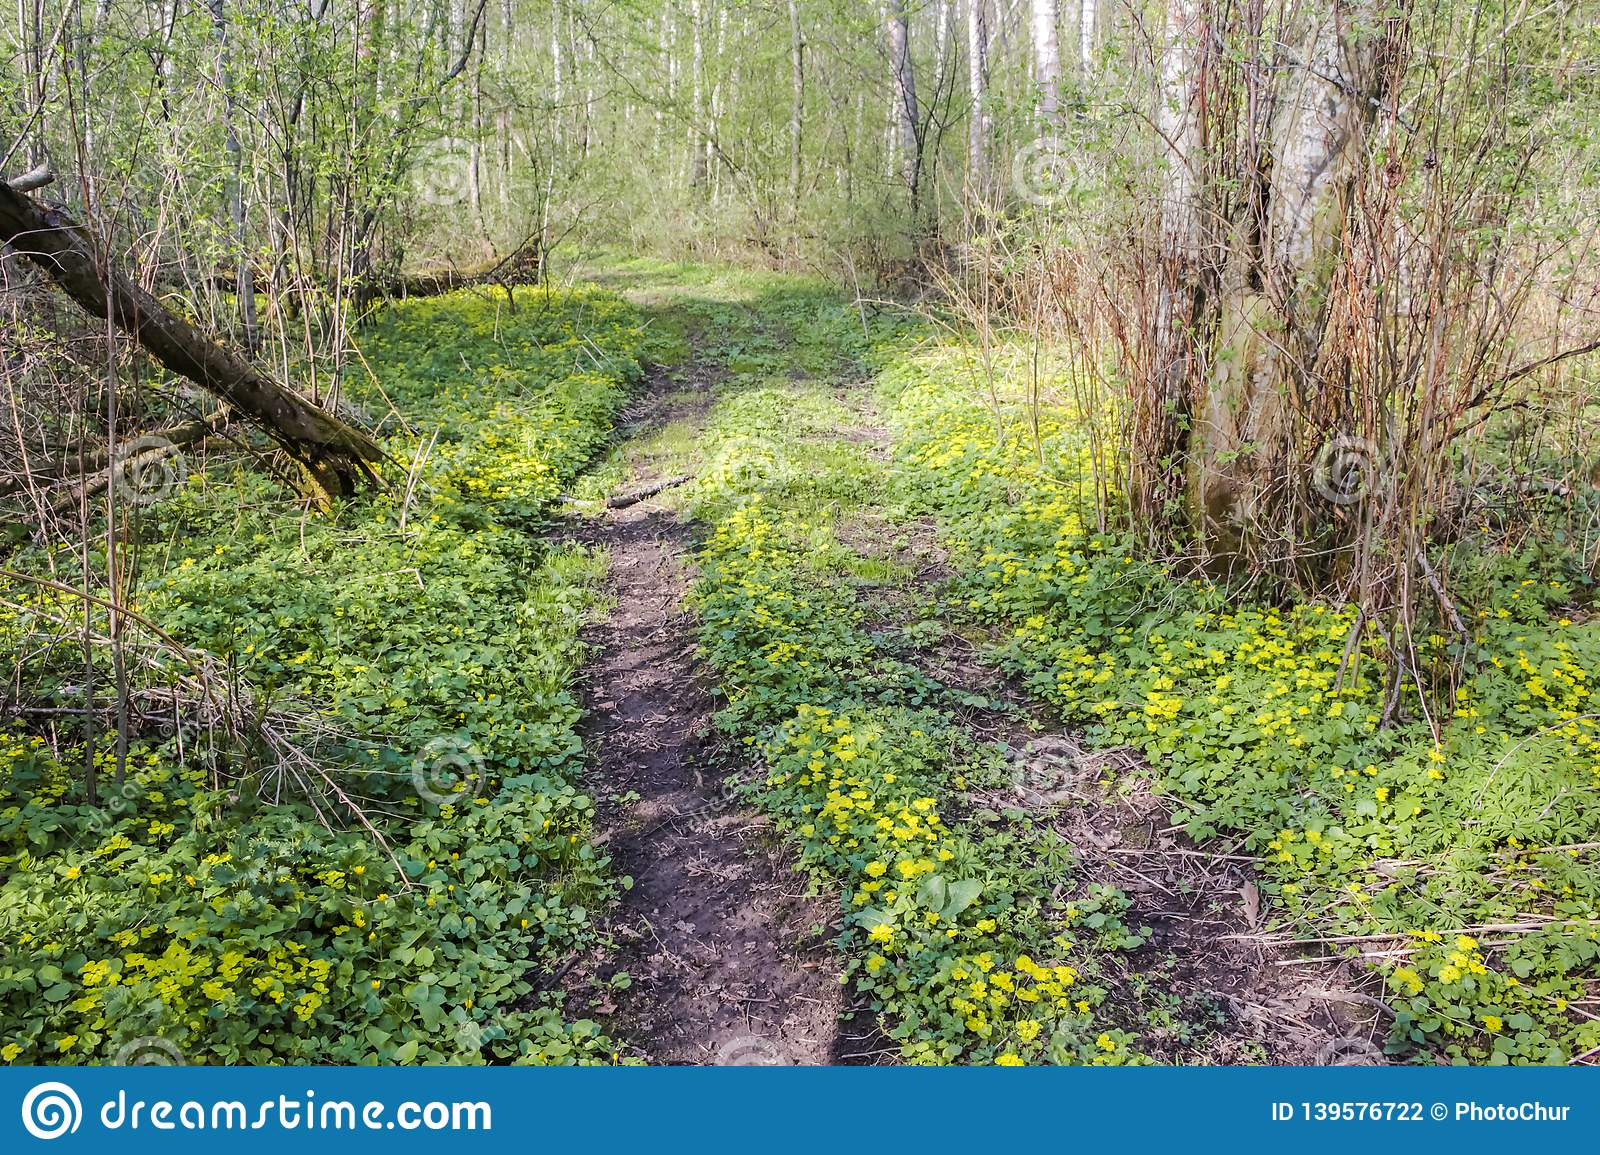 Beautiful forest road in yellow flowers